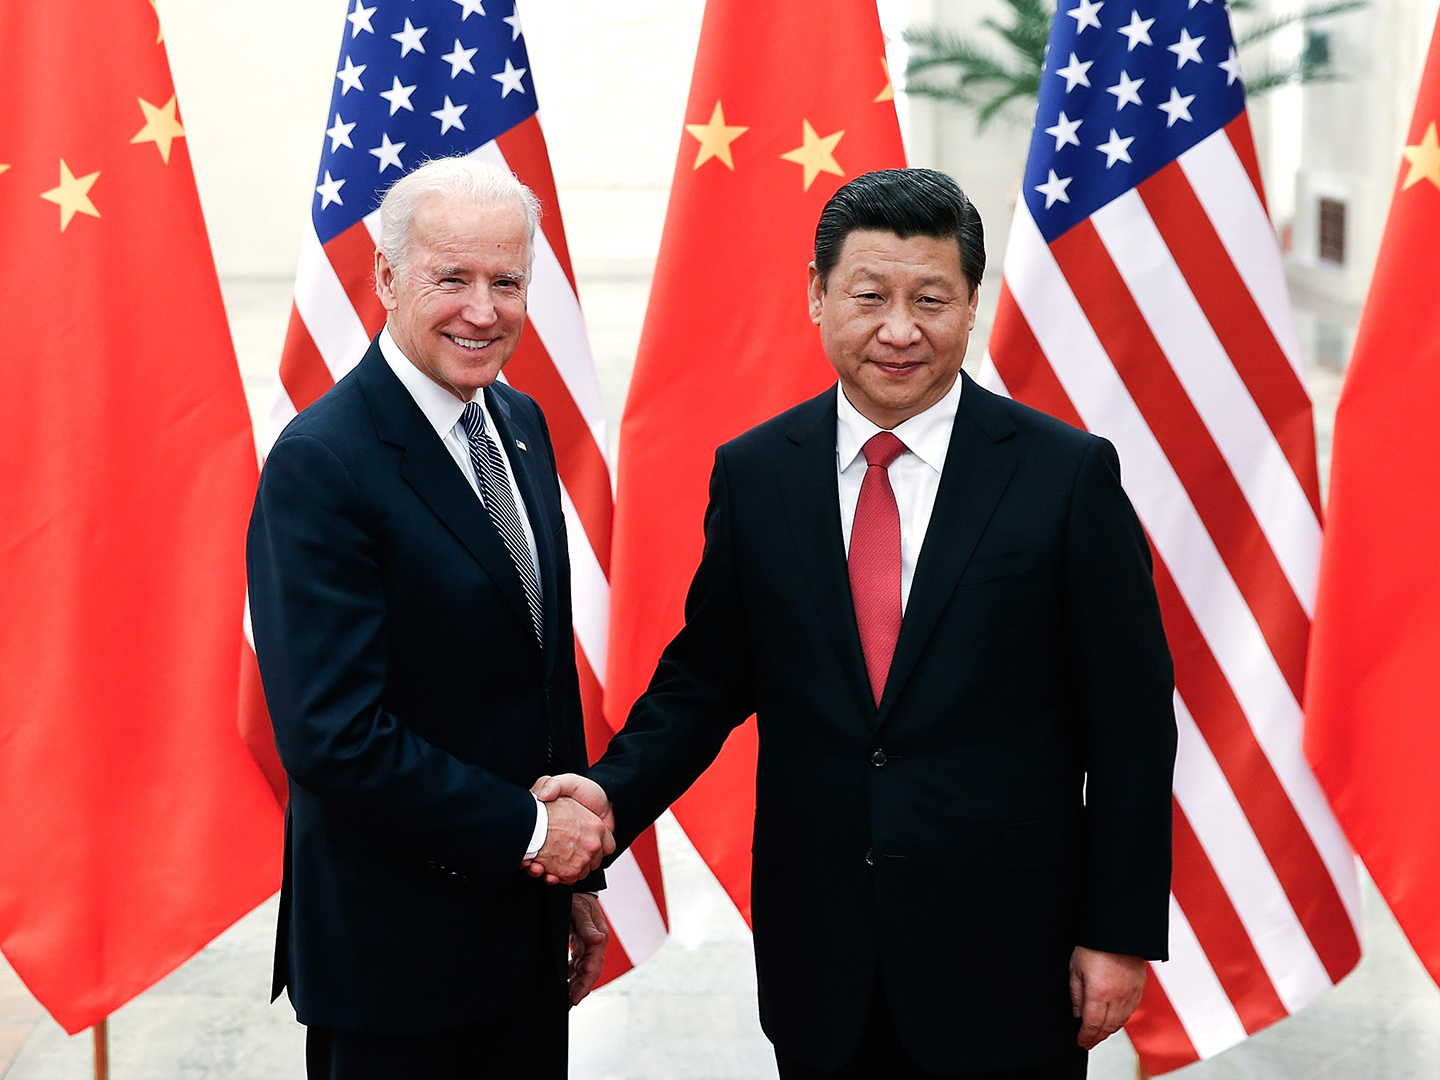 Joe Biden and Xi Jinping shaking hands